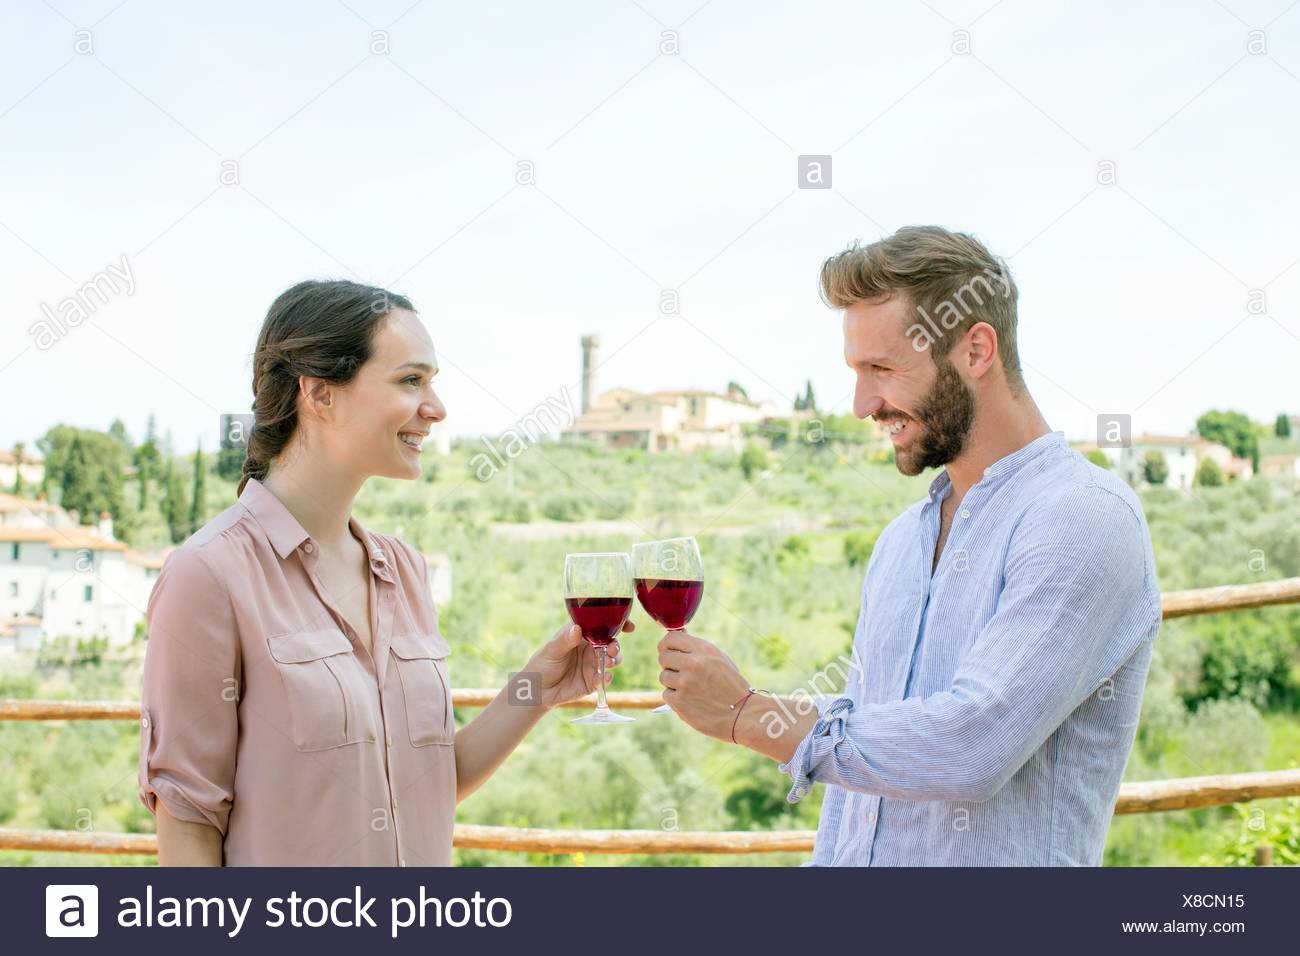 Waist up side view of young couple face to face making a toast smiling - Stock Image